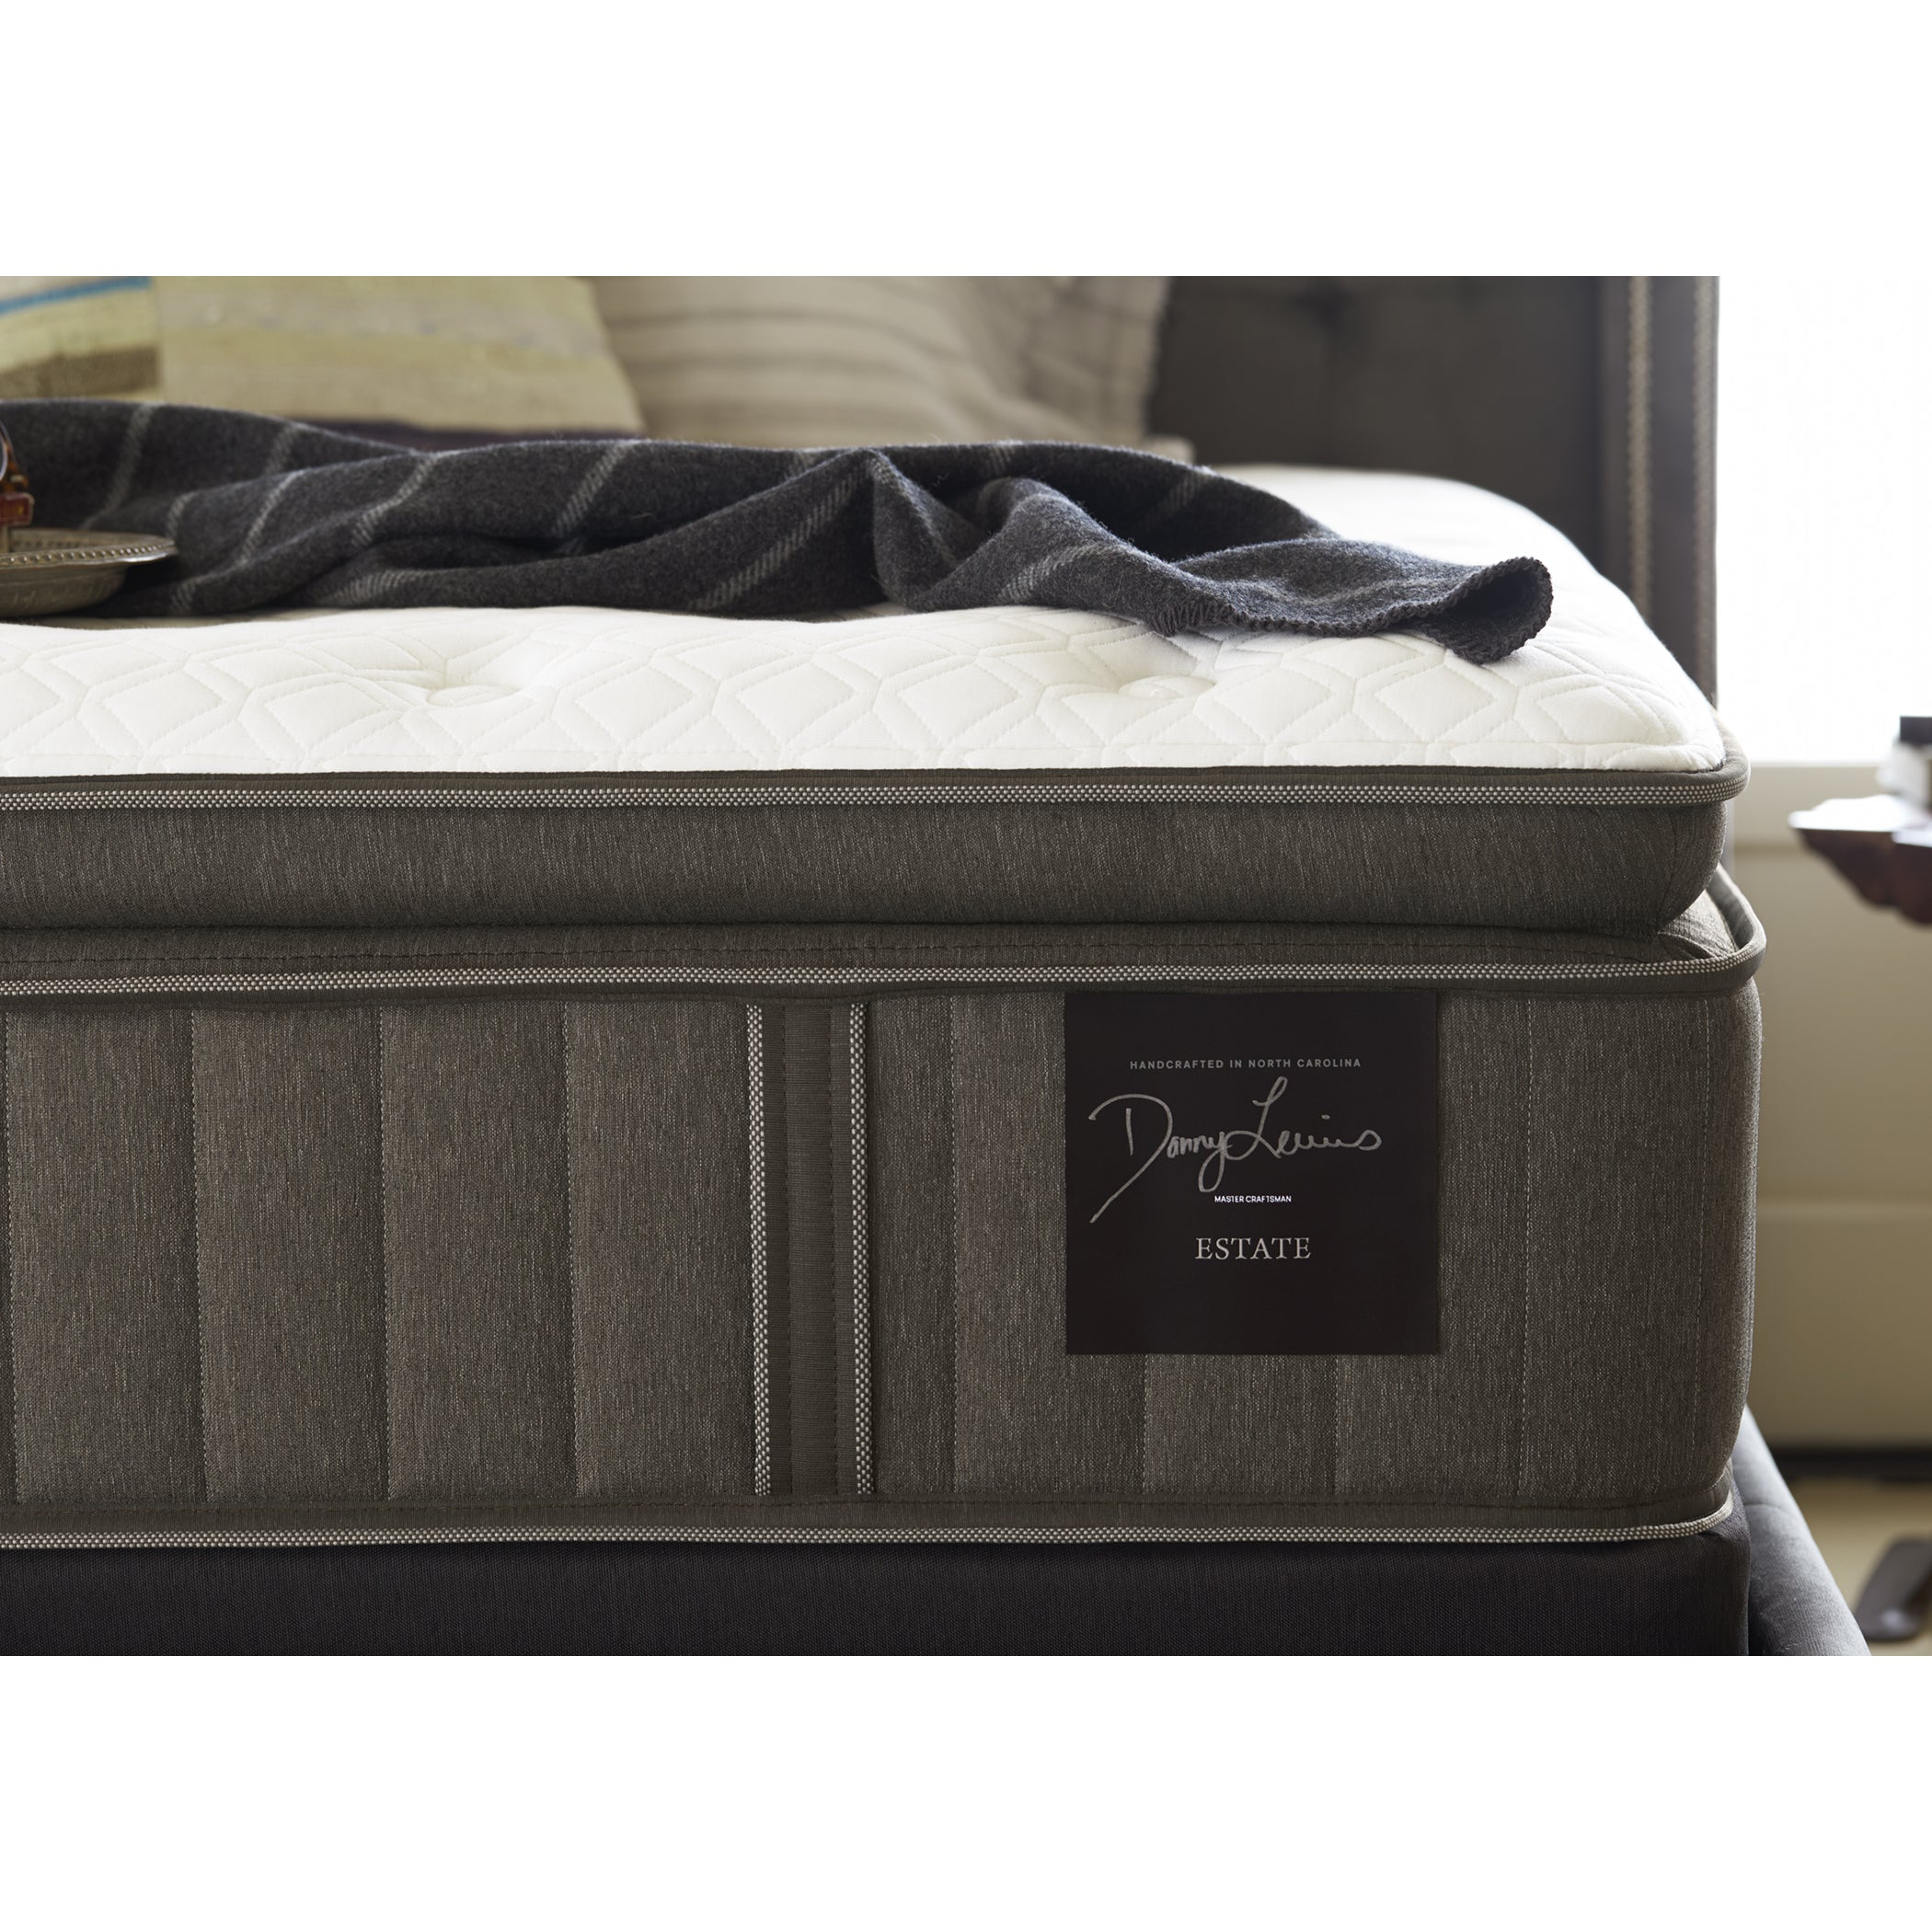 Stearns Foster Scarborough 14 Inch Plush Euro Pillow Top King Size Mattress Free Shipping Today 17352057